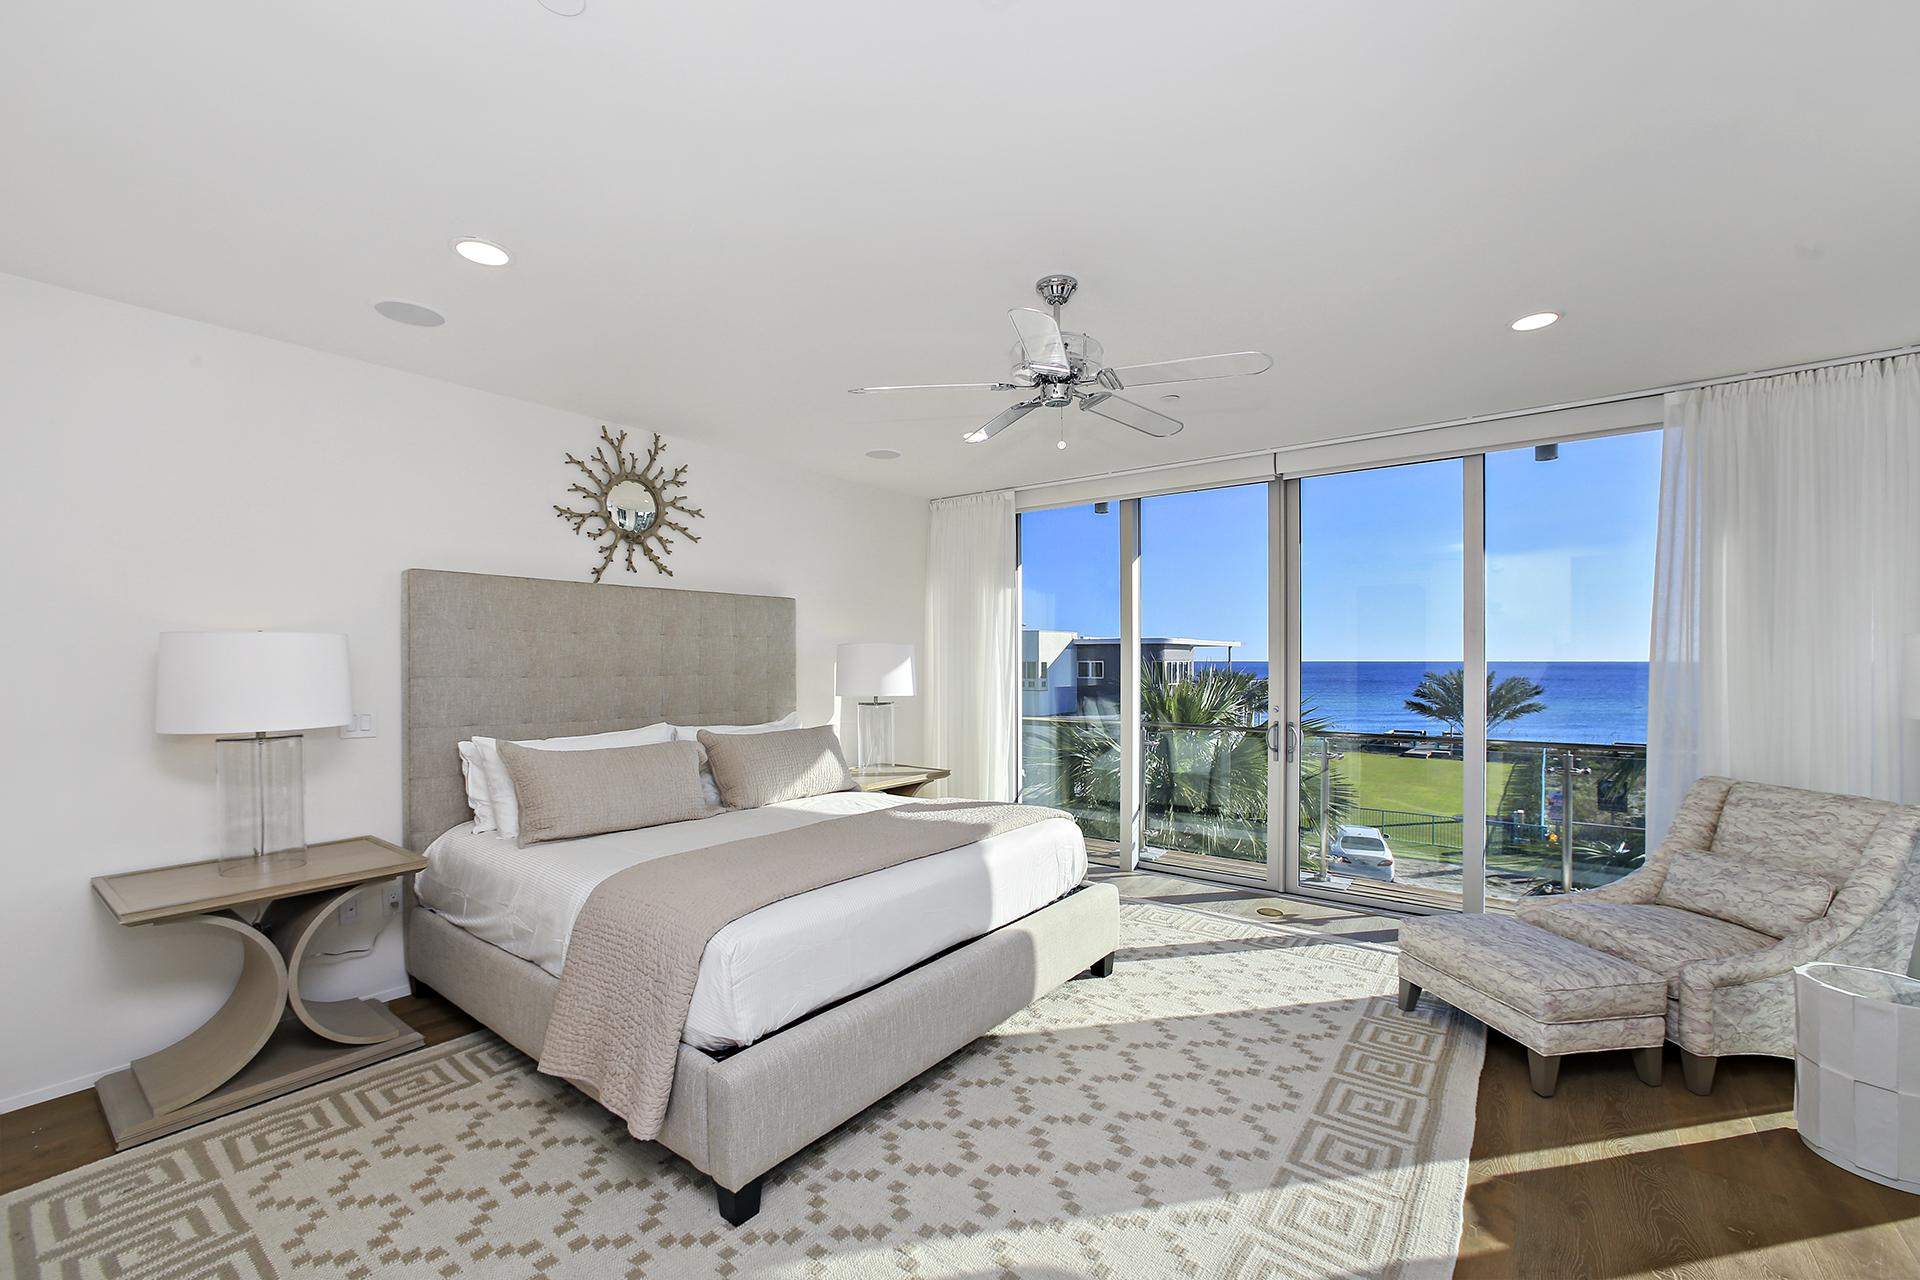 Sophisticated master bedroom with full views of the Gulf